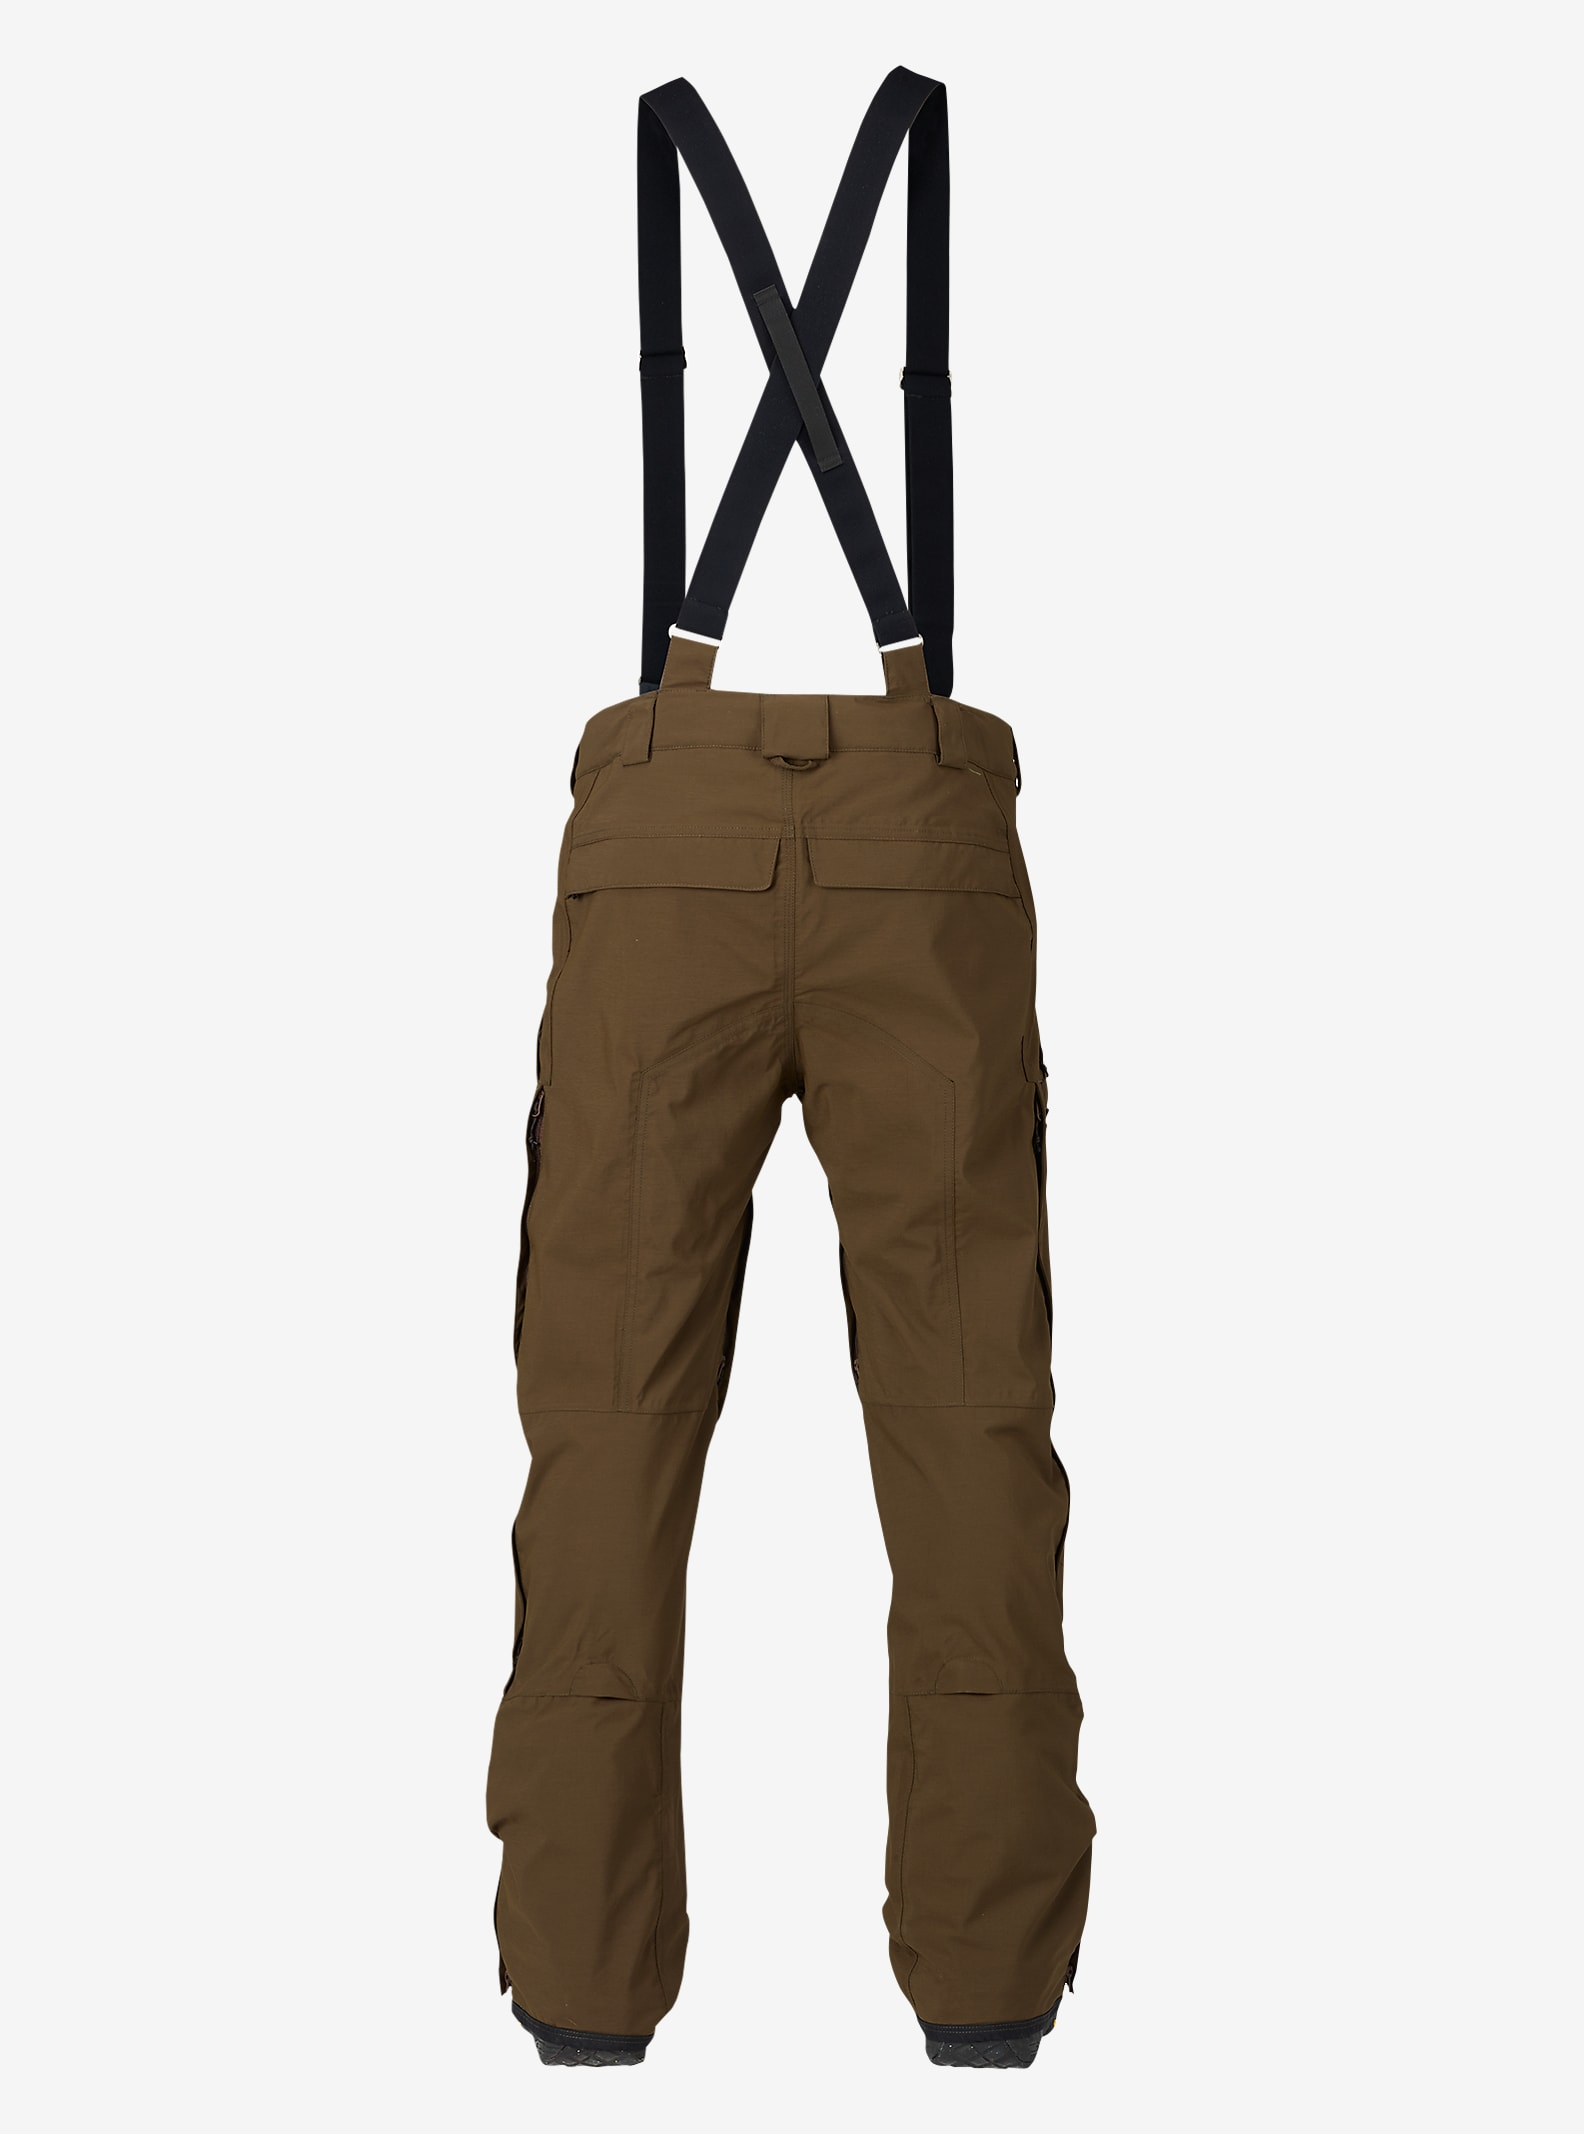 Burton Monitor Pant shown in Mocha